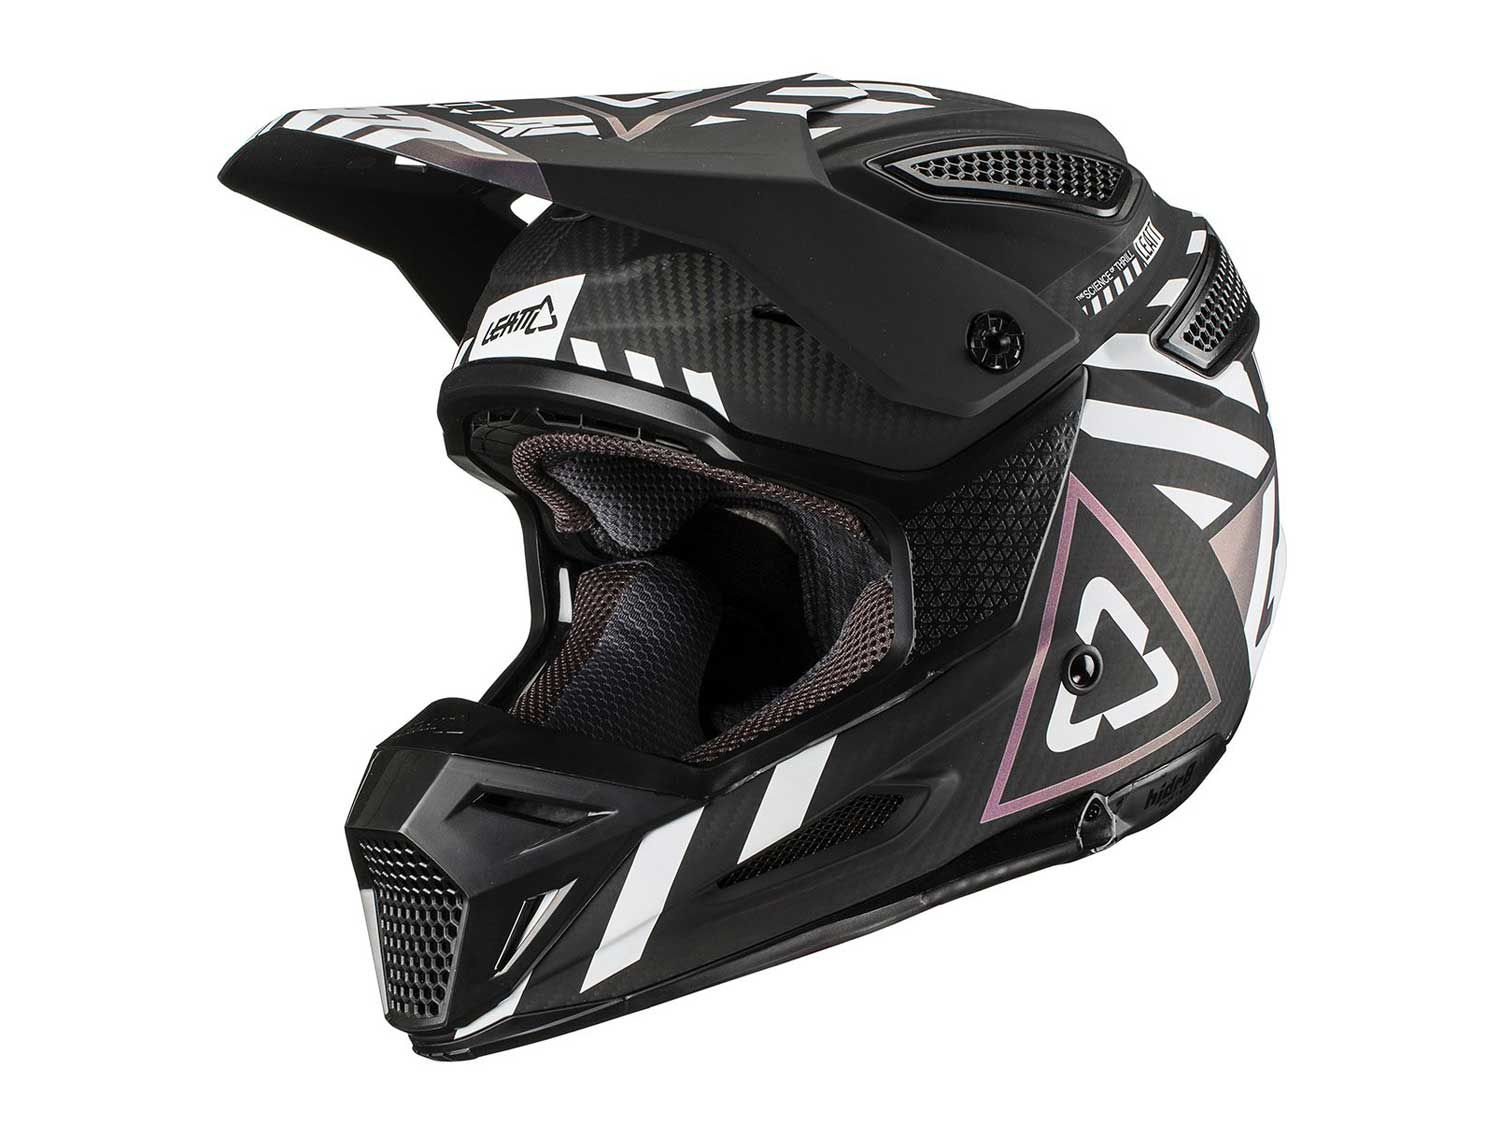 The Leatt GPX 6.5 Carbon utilizes a carbon matrix shell that is offered in three sizes.